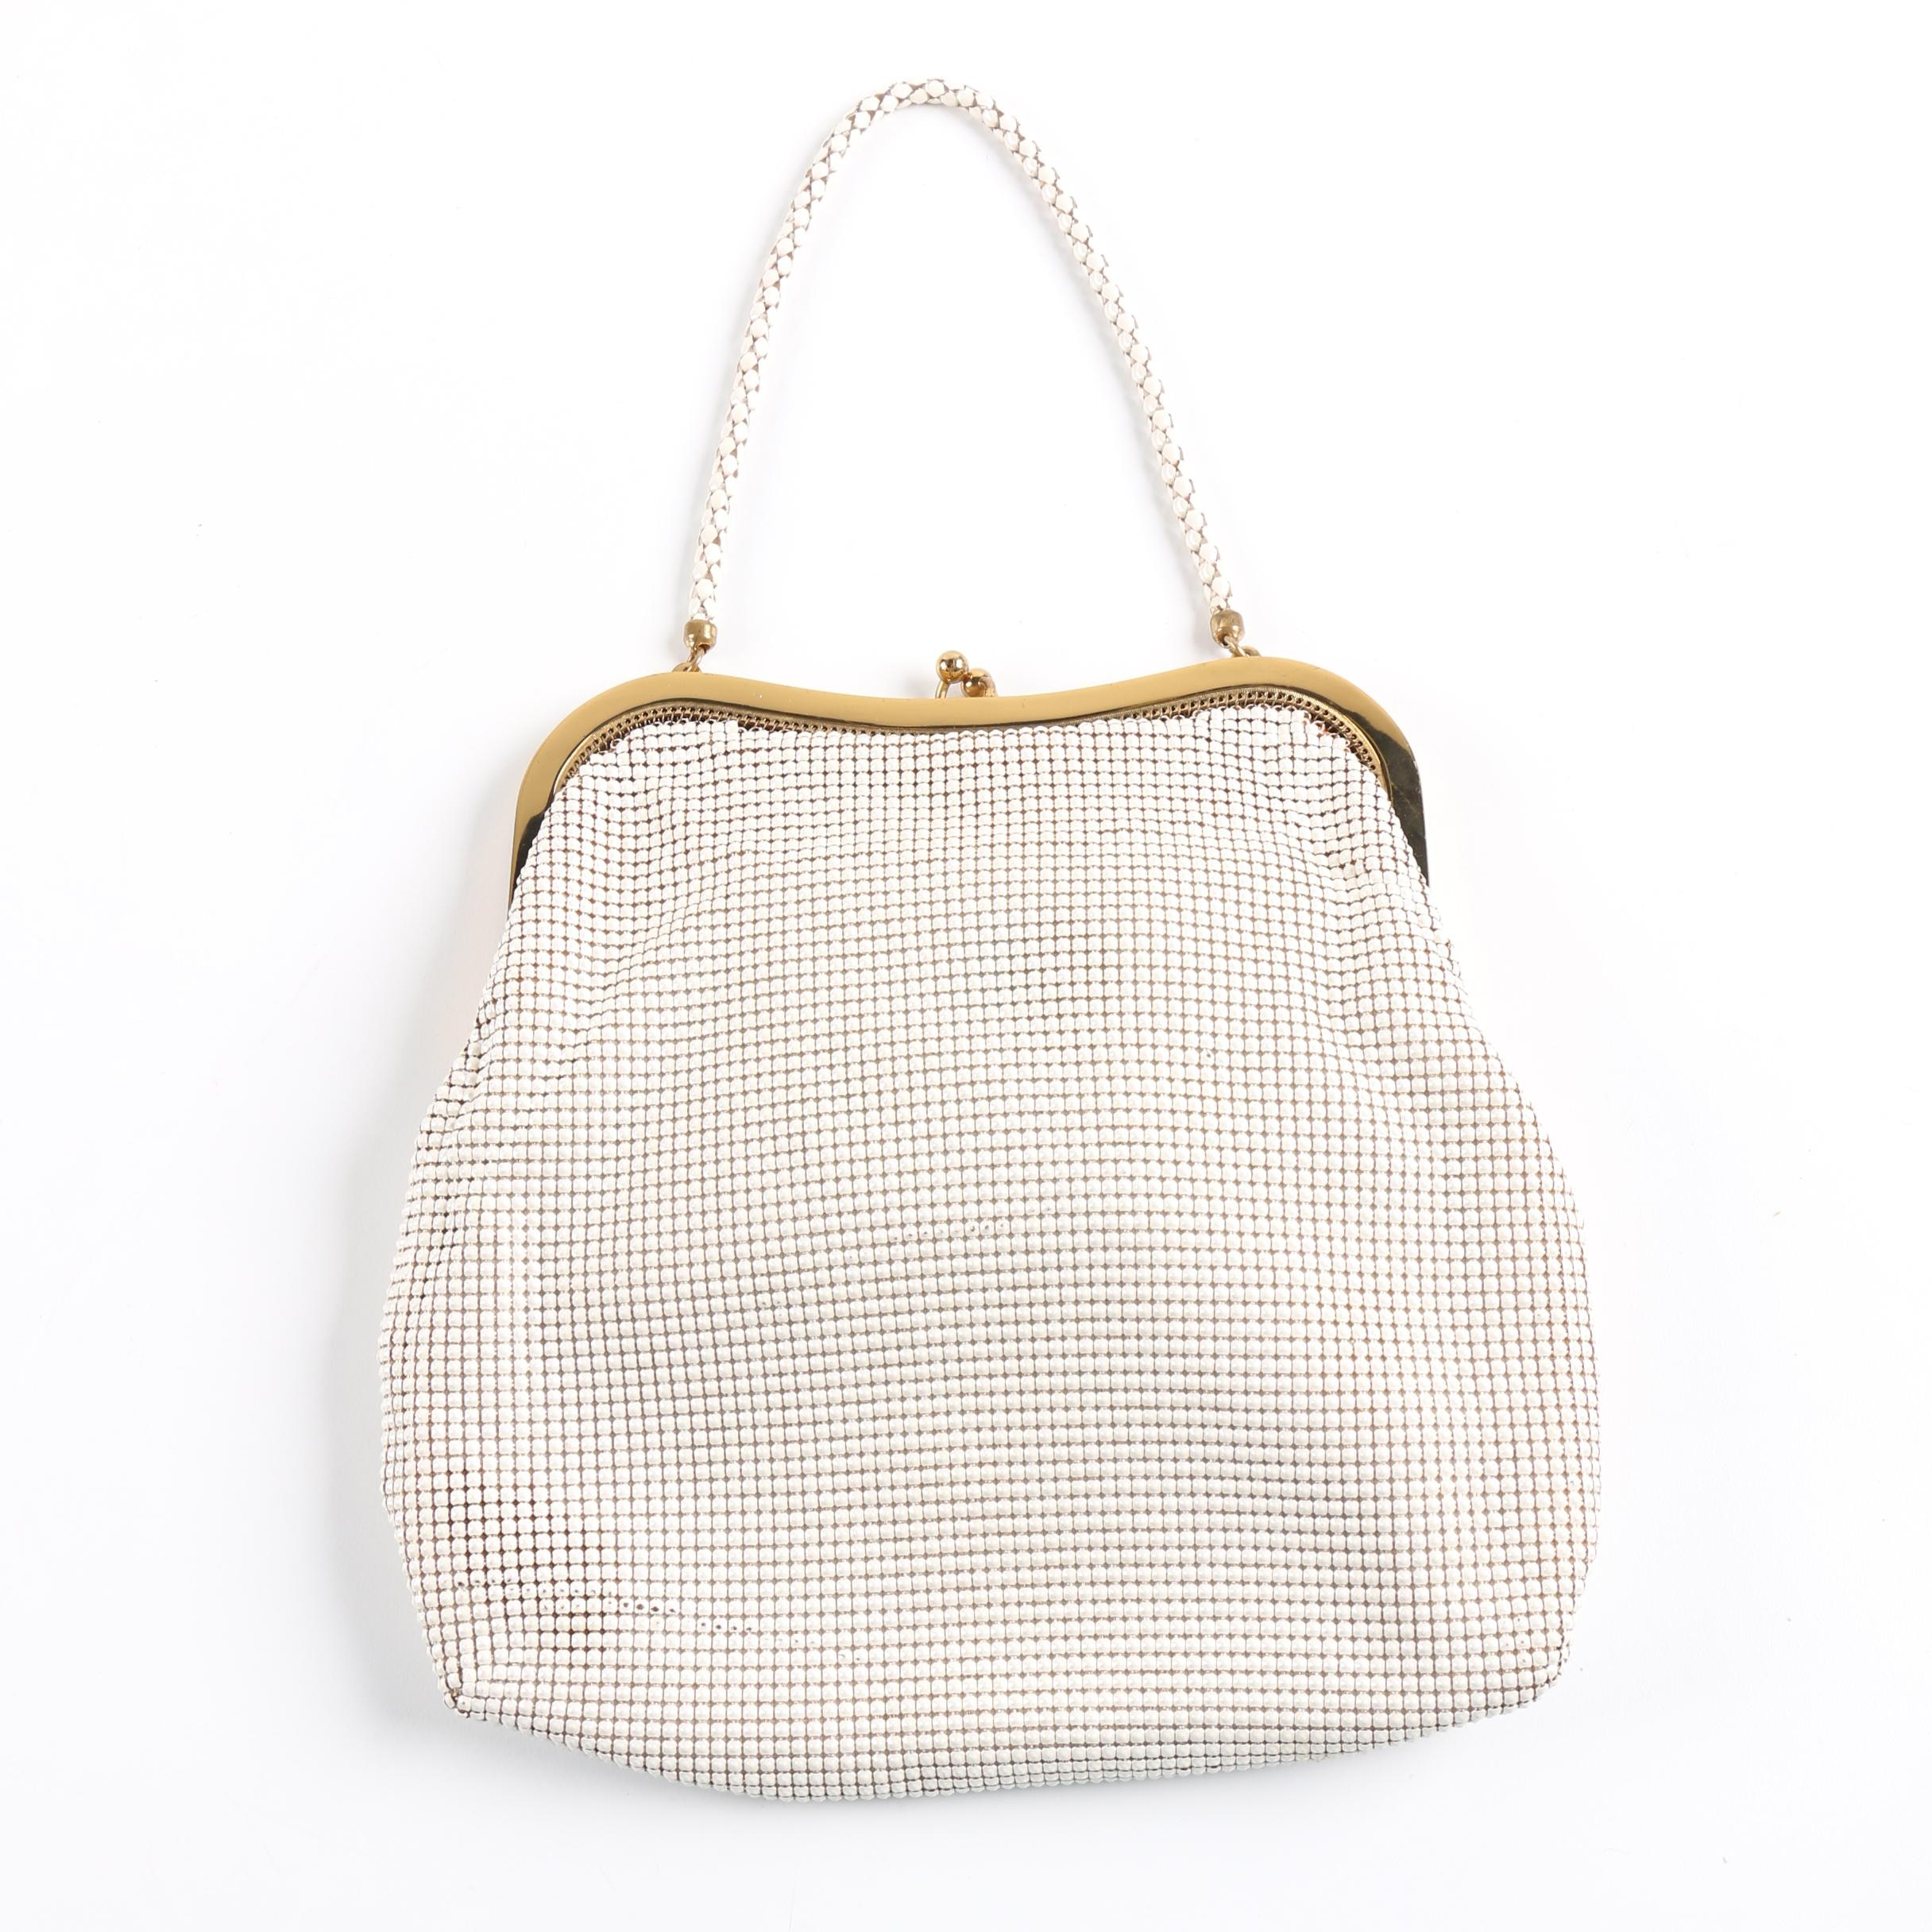 Whiting & Davis Vintage Mesh Handbag with Shell Compact